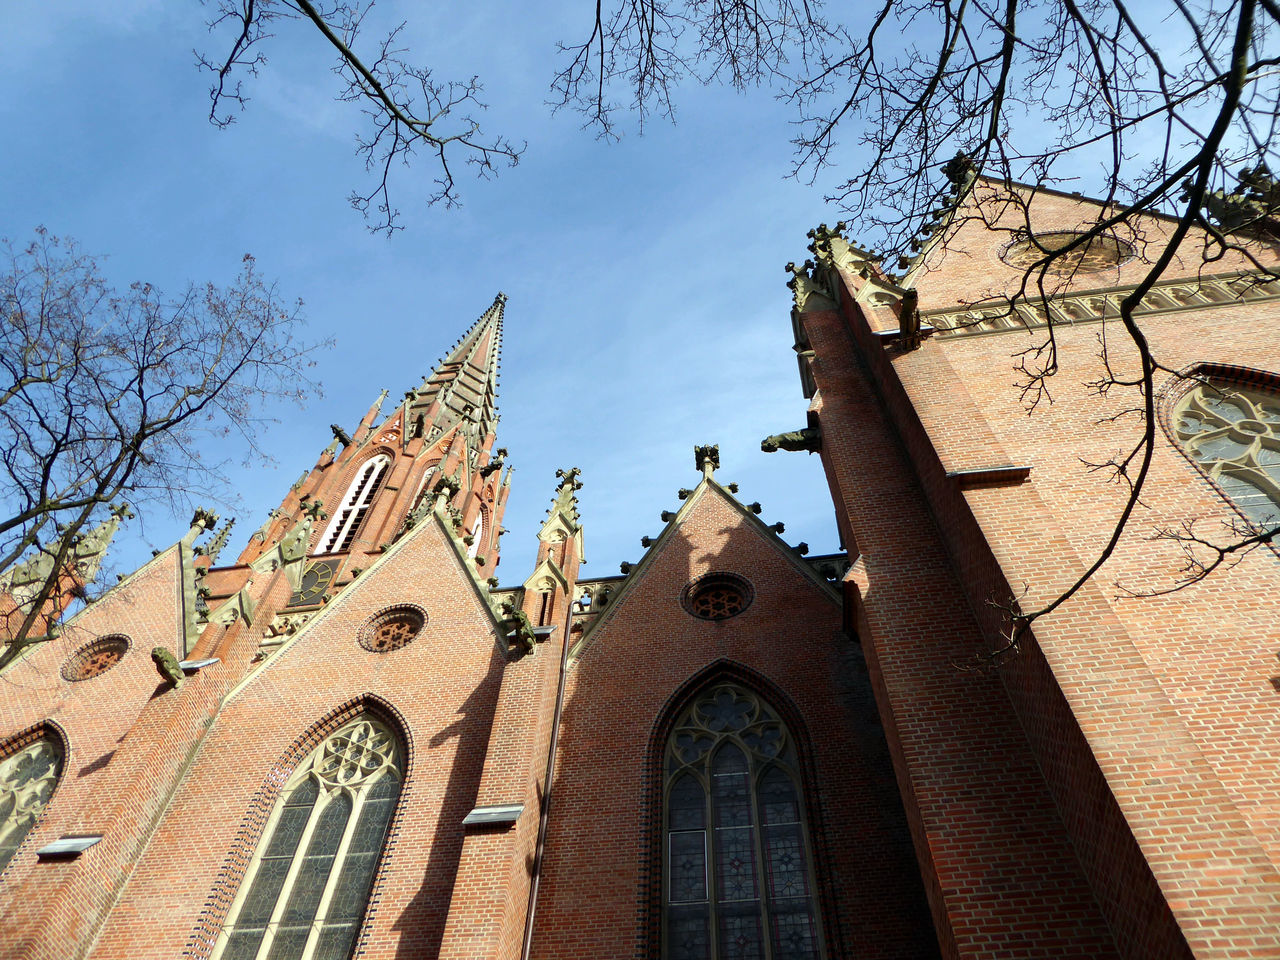 Favorite Churches In My Town Christuskirche Hannover Architecture Built Structure Blue Sky Bare Tree